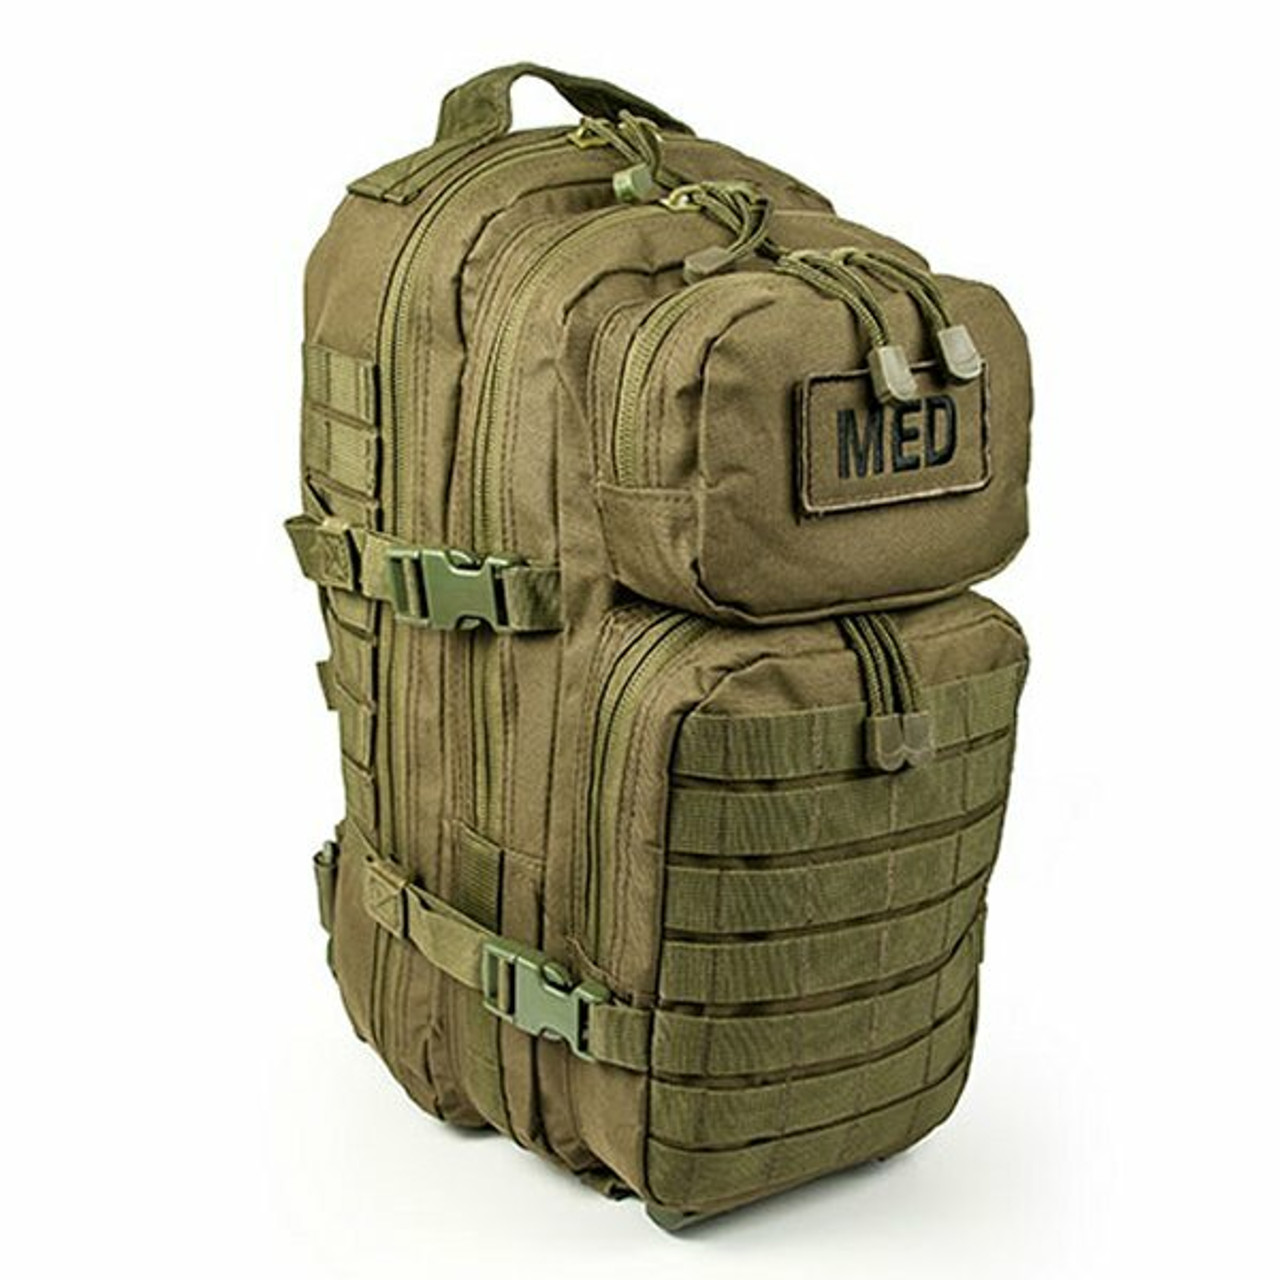 Highlander Maxi Pack Scouts Military Camping Olive Green First Aid Kit